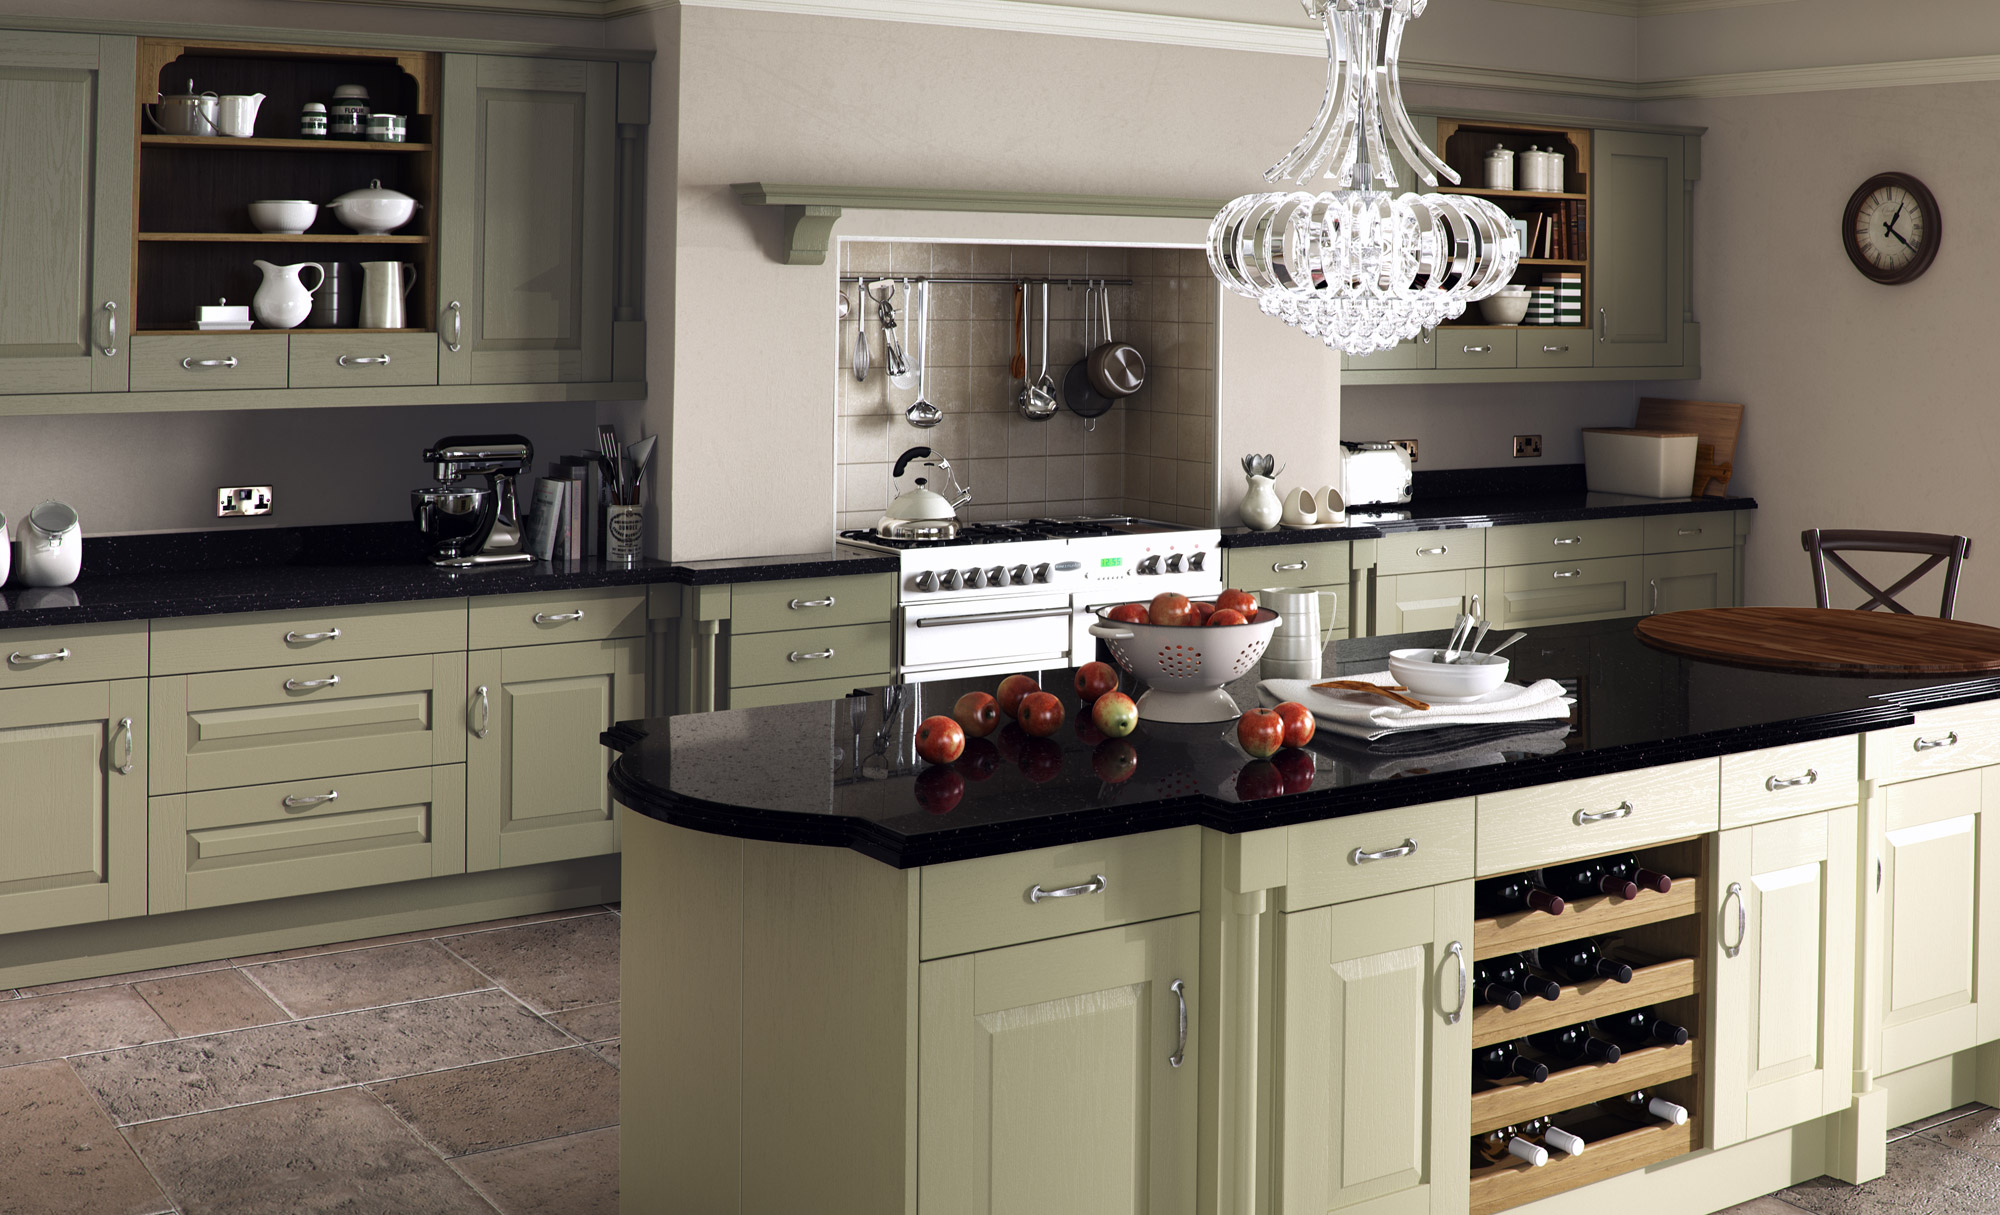 http://www.ianwoodbespokeinteriors.co.uk/wp-content/uploads/2017/01/windsor-classic-painted-olive-kitchen-hero.jpg